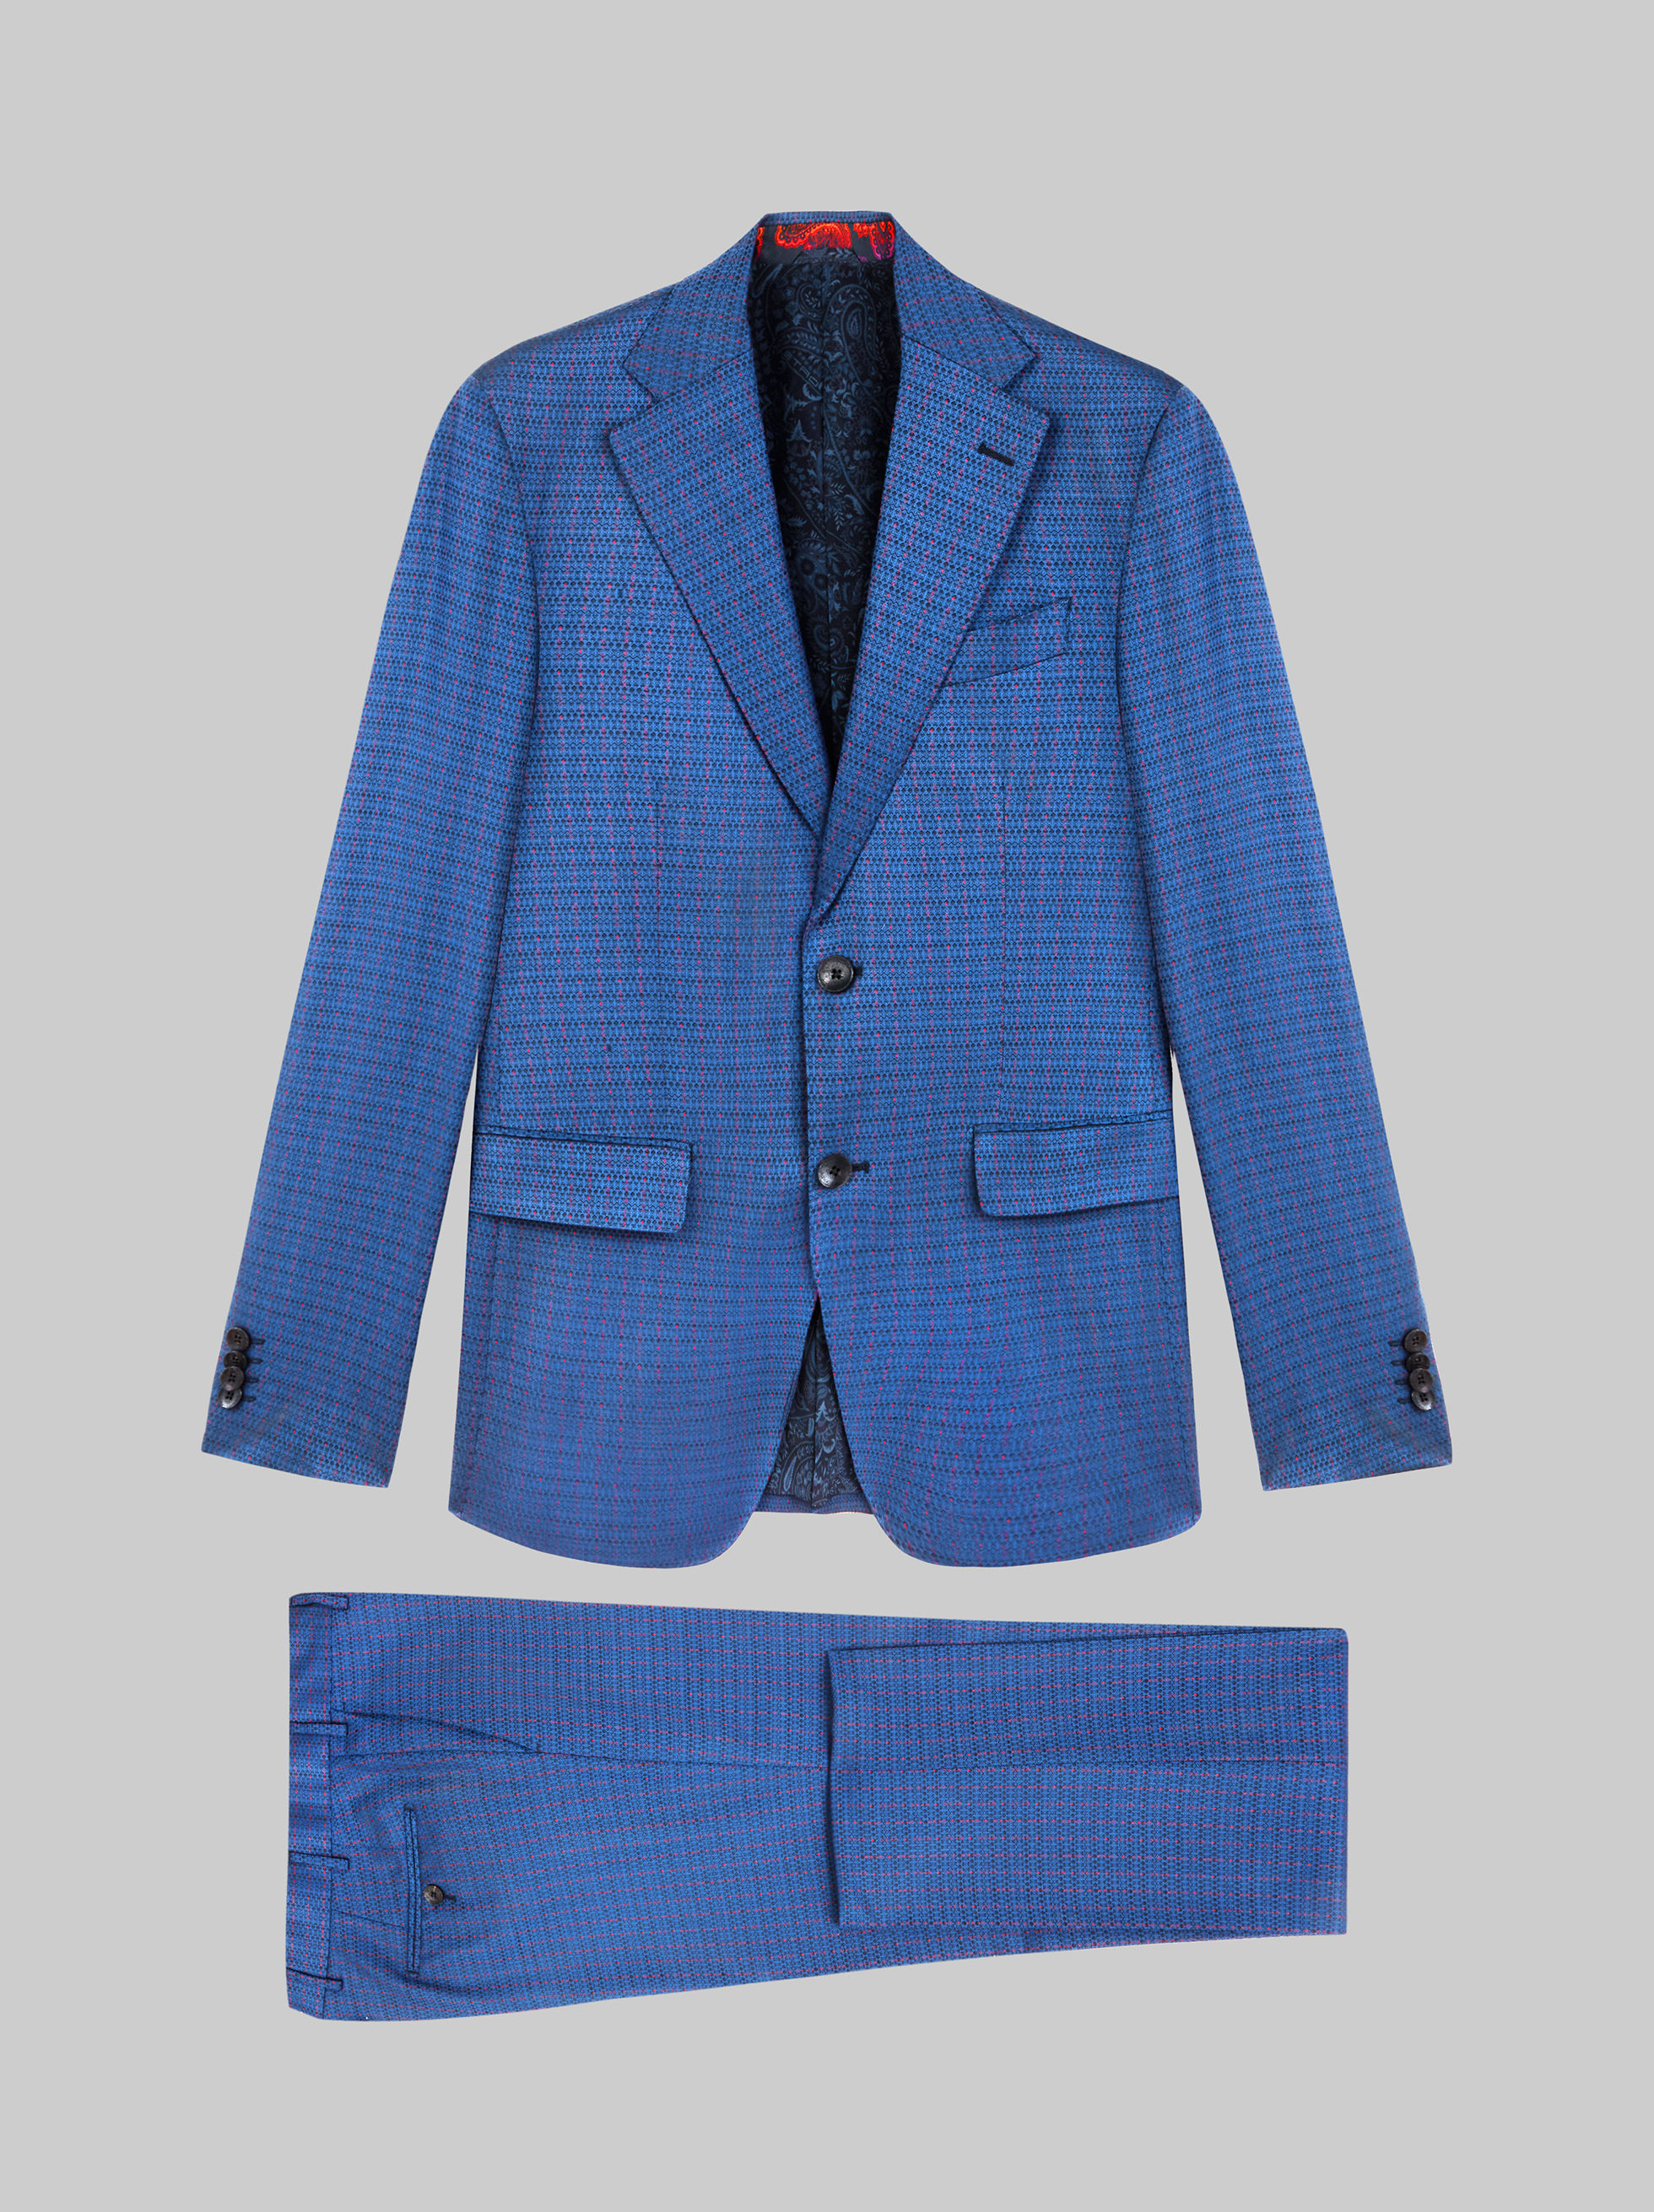 WOOL SUIT WITH LOGO